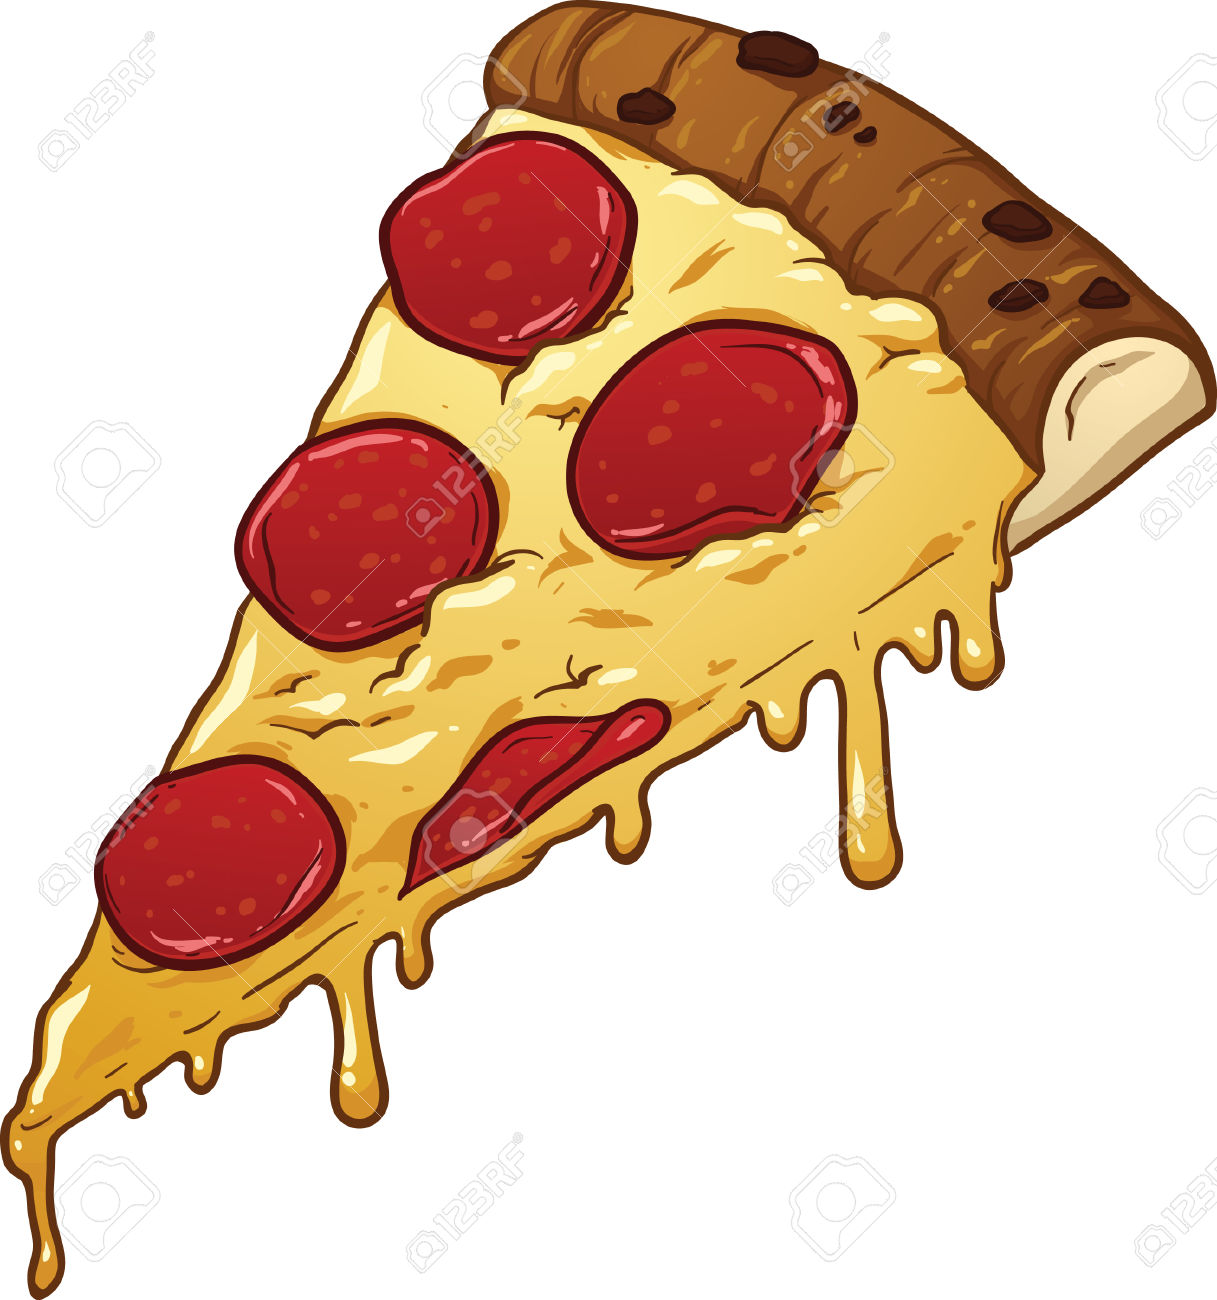 Pizza Clip Art Free Download | Clipart Panda - Free ...